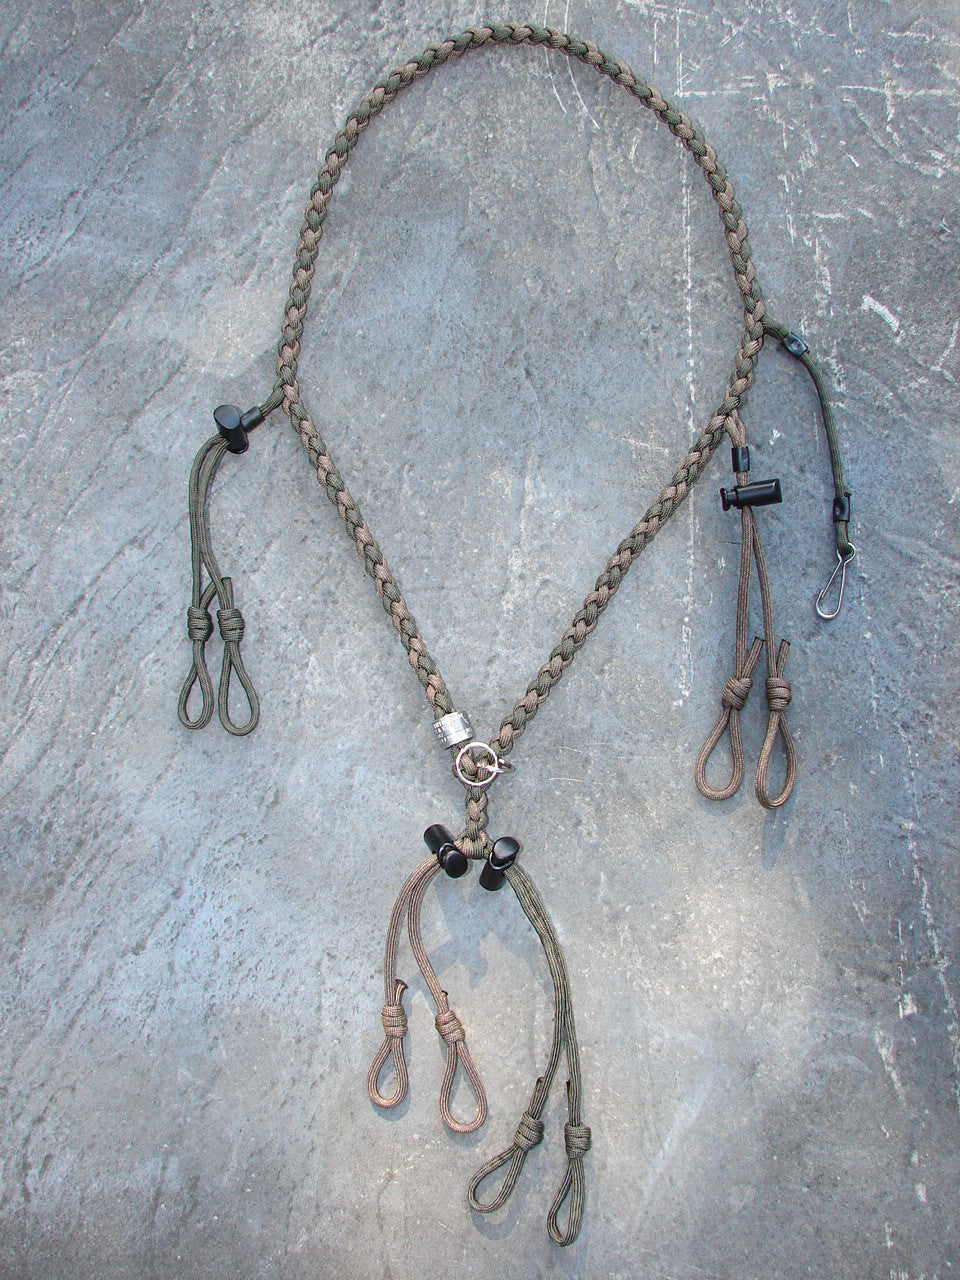 Paracord Lanyard for 4 calls and whistle - round braid